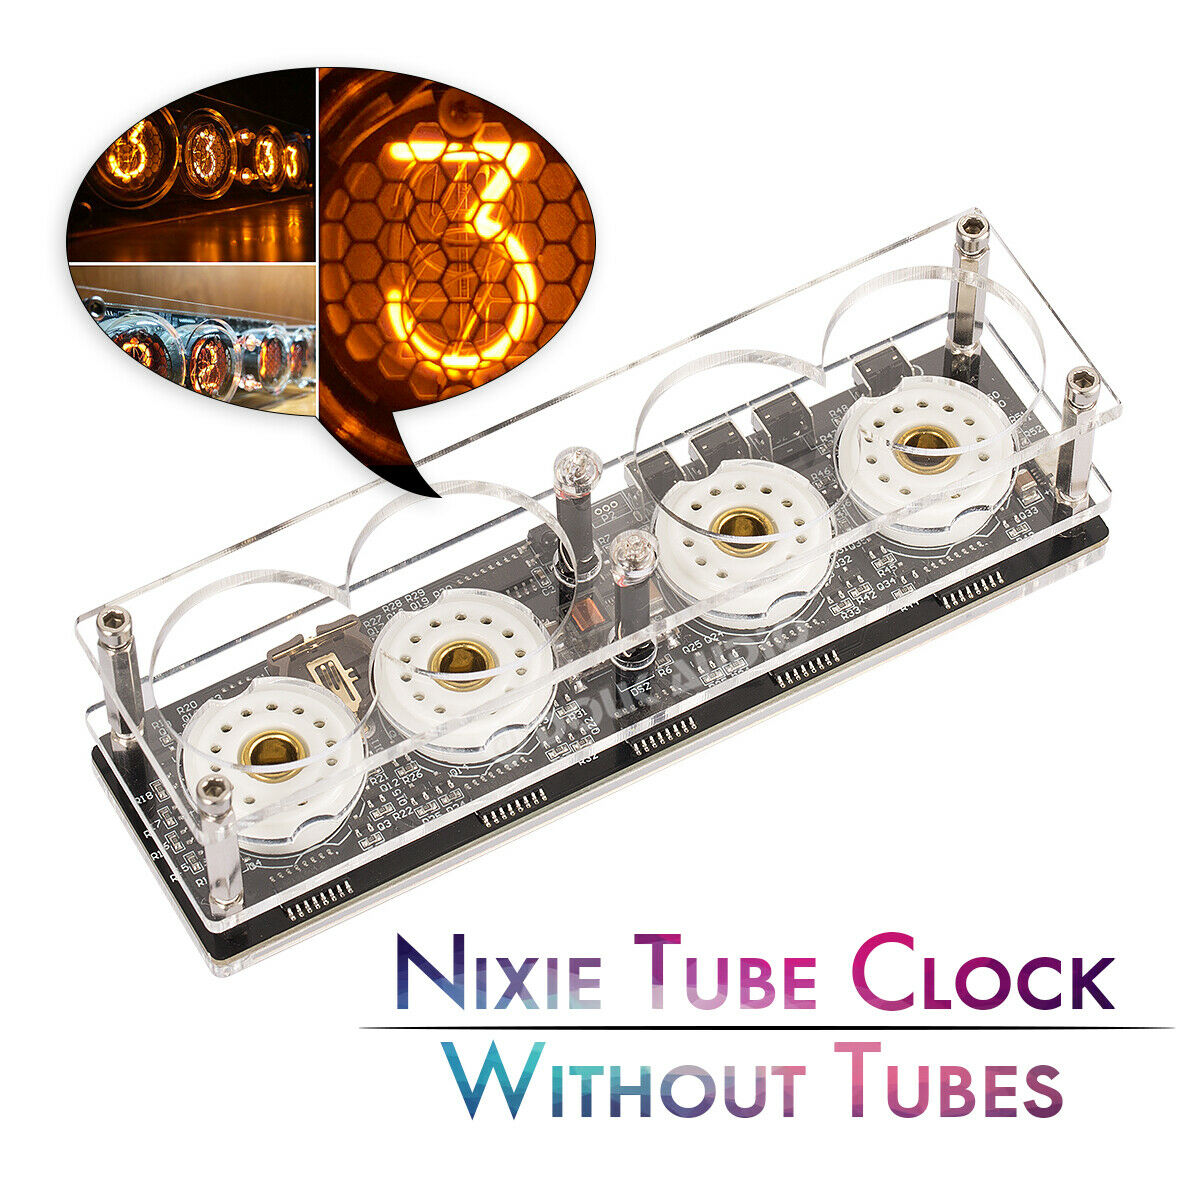 Nobsound Mini Retro Digital Nixie Tube Clock DIY KIT Assembled Without ZM1020 Z560M Tubes